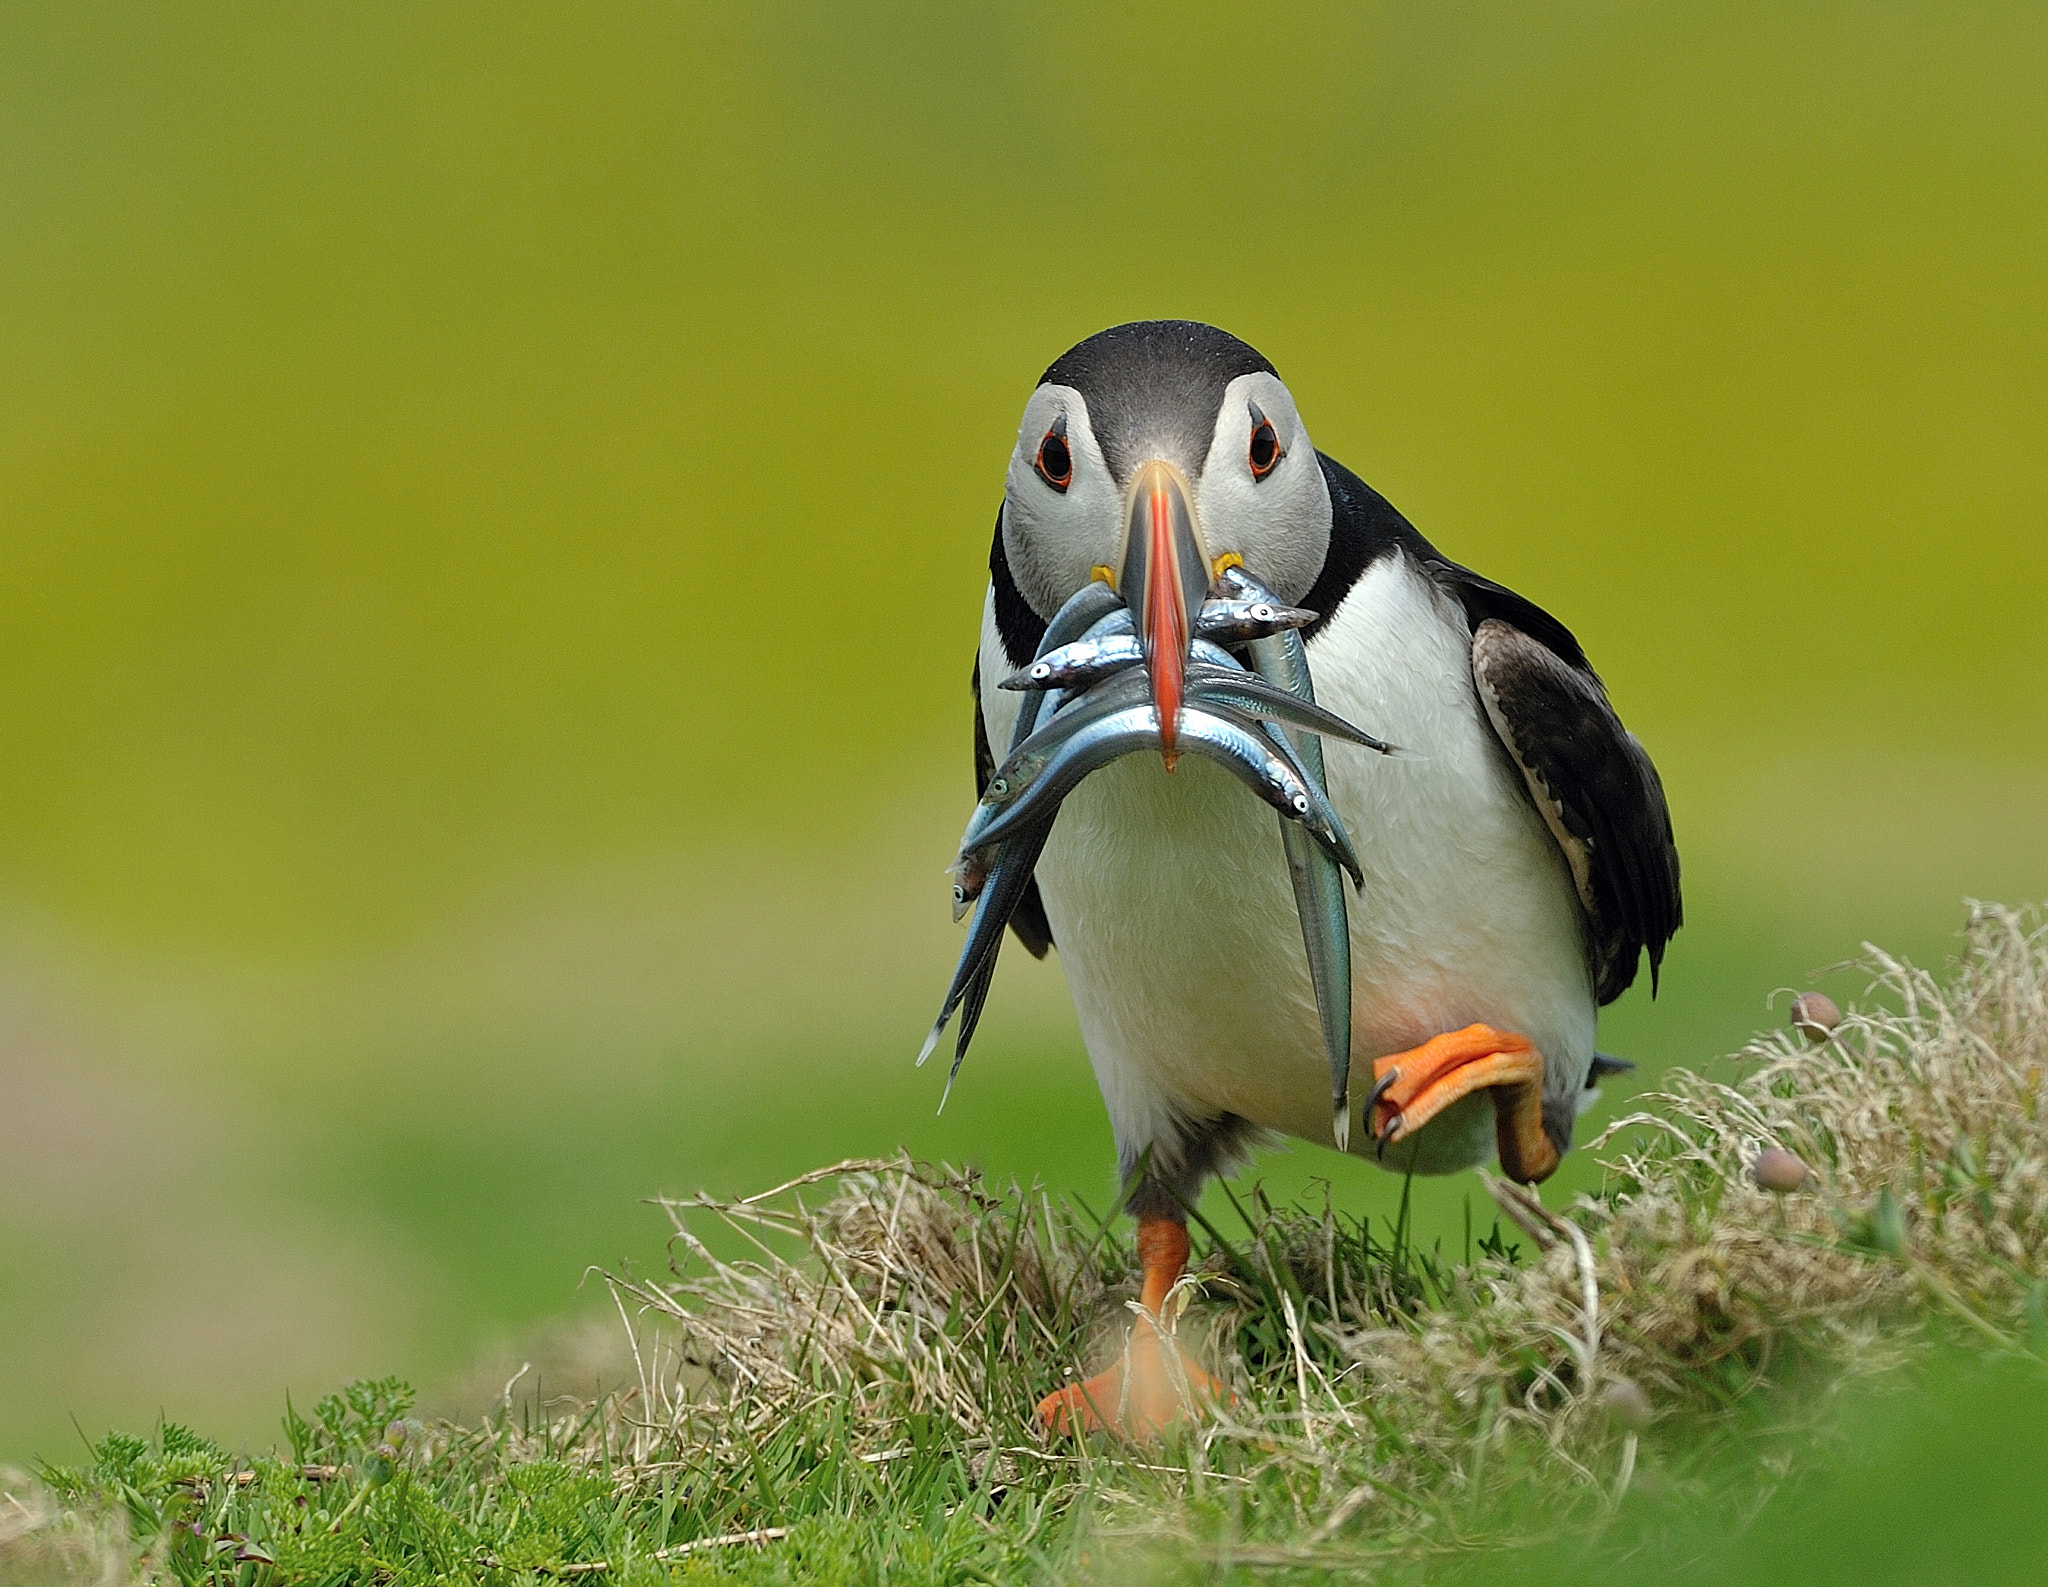 Photograph Puffin with Catch by Dean Mason on 500px